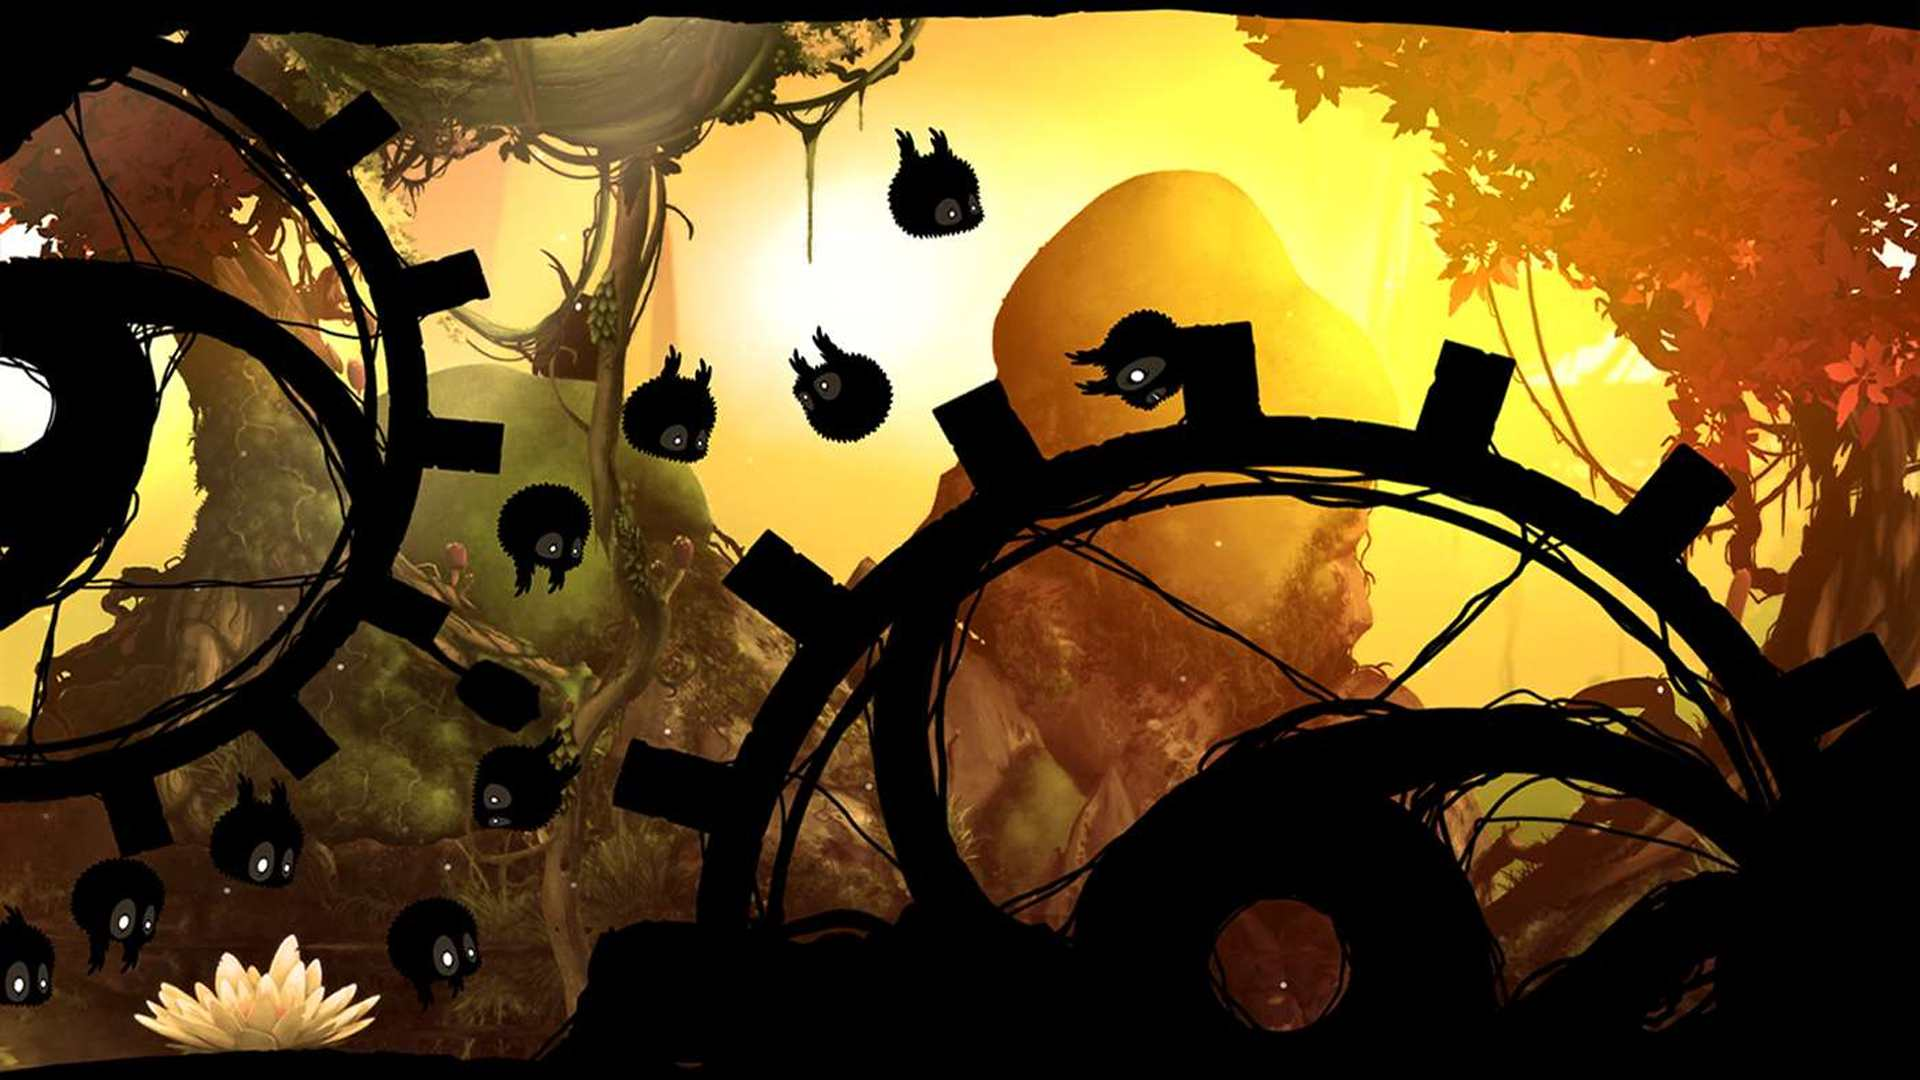 Badland multiplayer video game on iOS, Android, and Windows Phone.